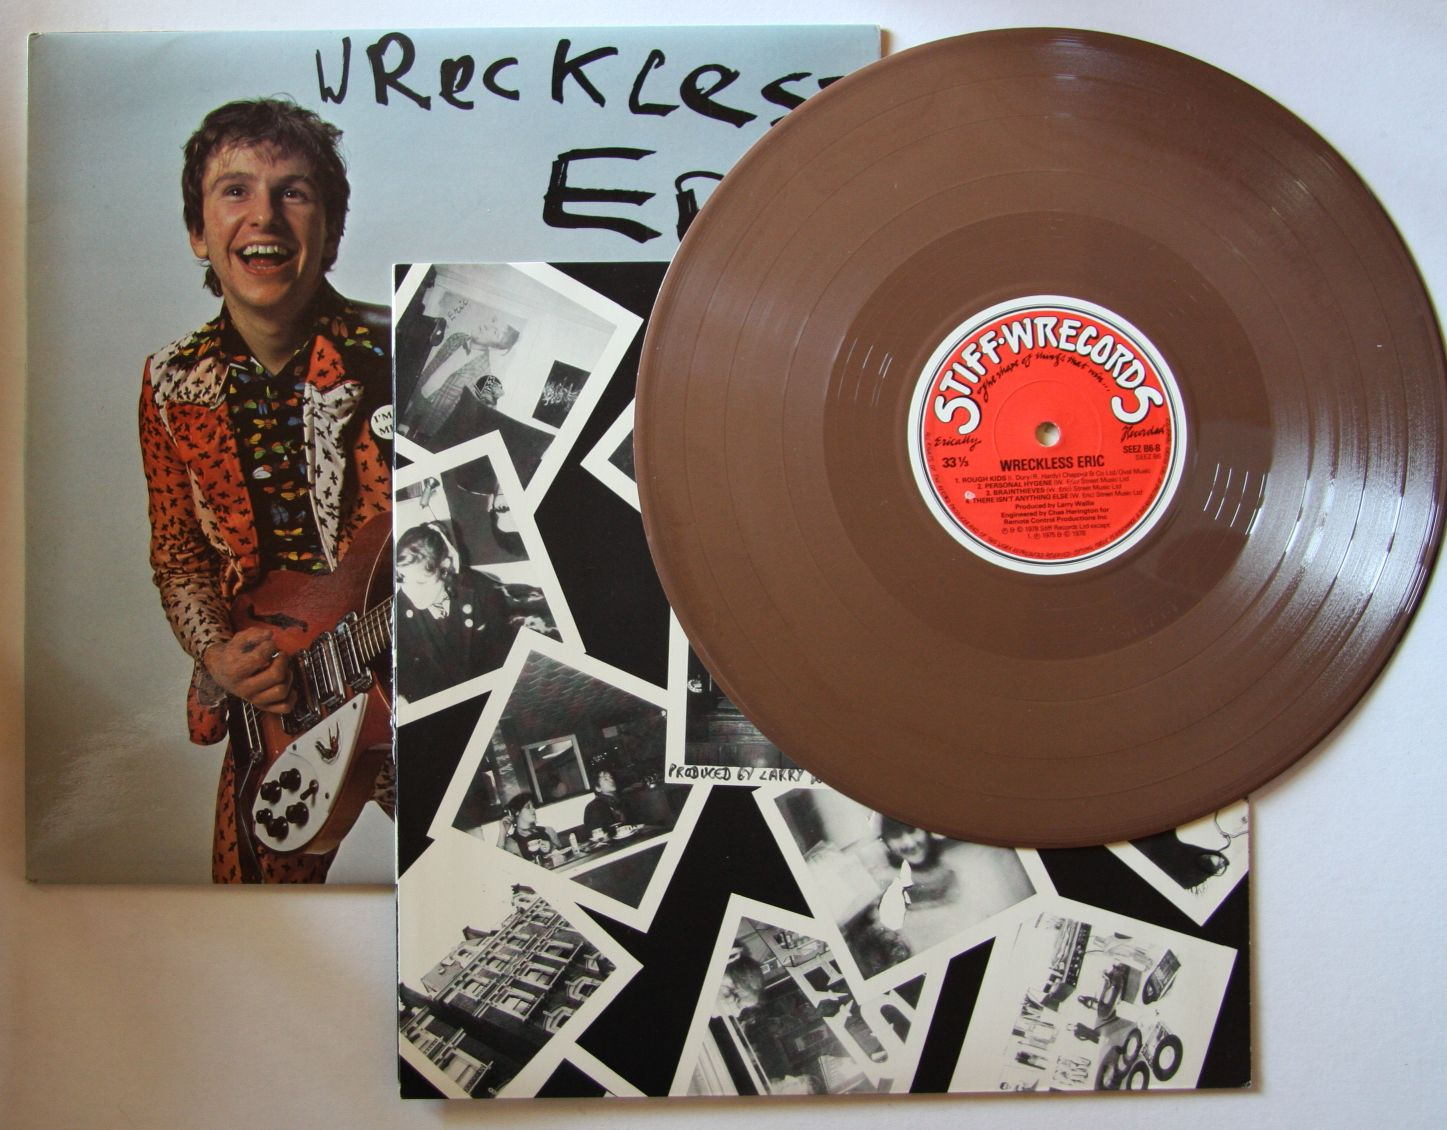 Wreckless Eric Wreckless Eric Records Vinyl And Cds